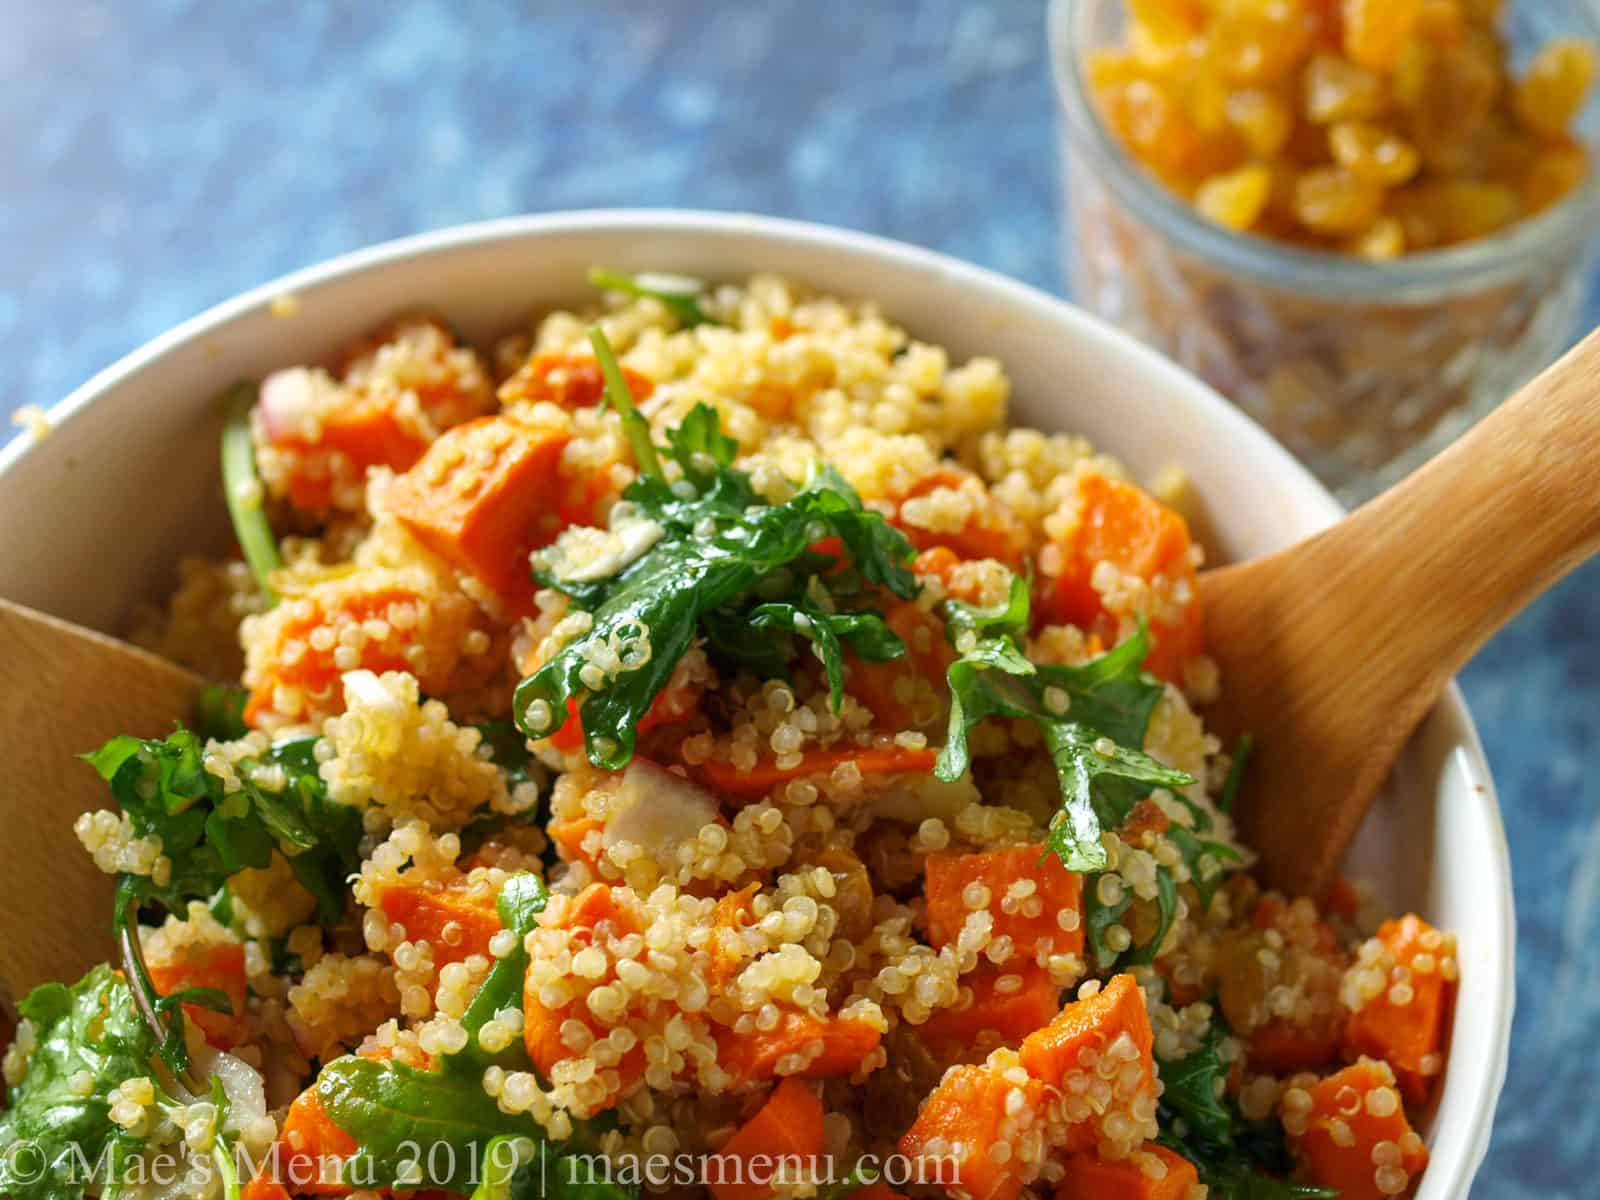 A sweet potato & quinoa salad with a wooden spoon in the bowl